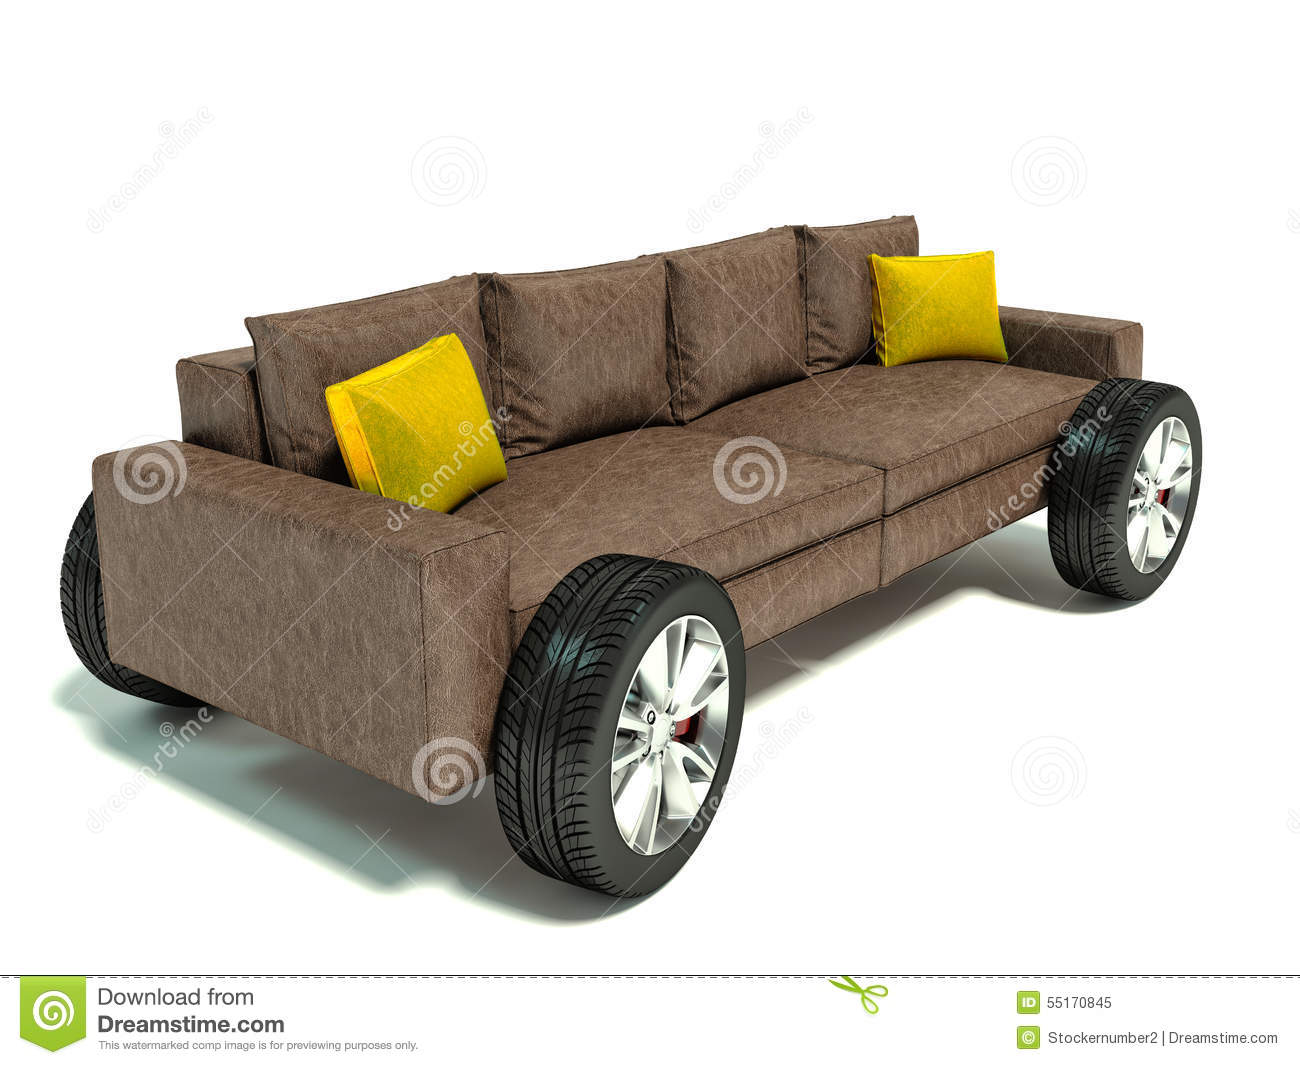 Charmant The Concept Of Moving To A New Home. Sofa On Wheels